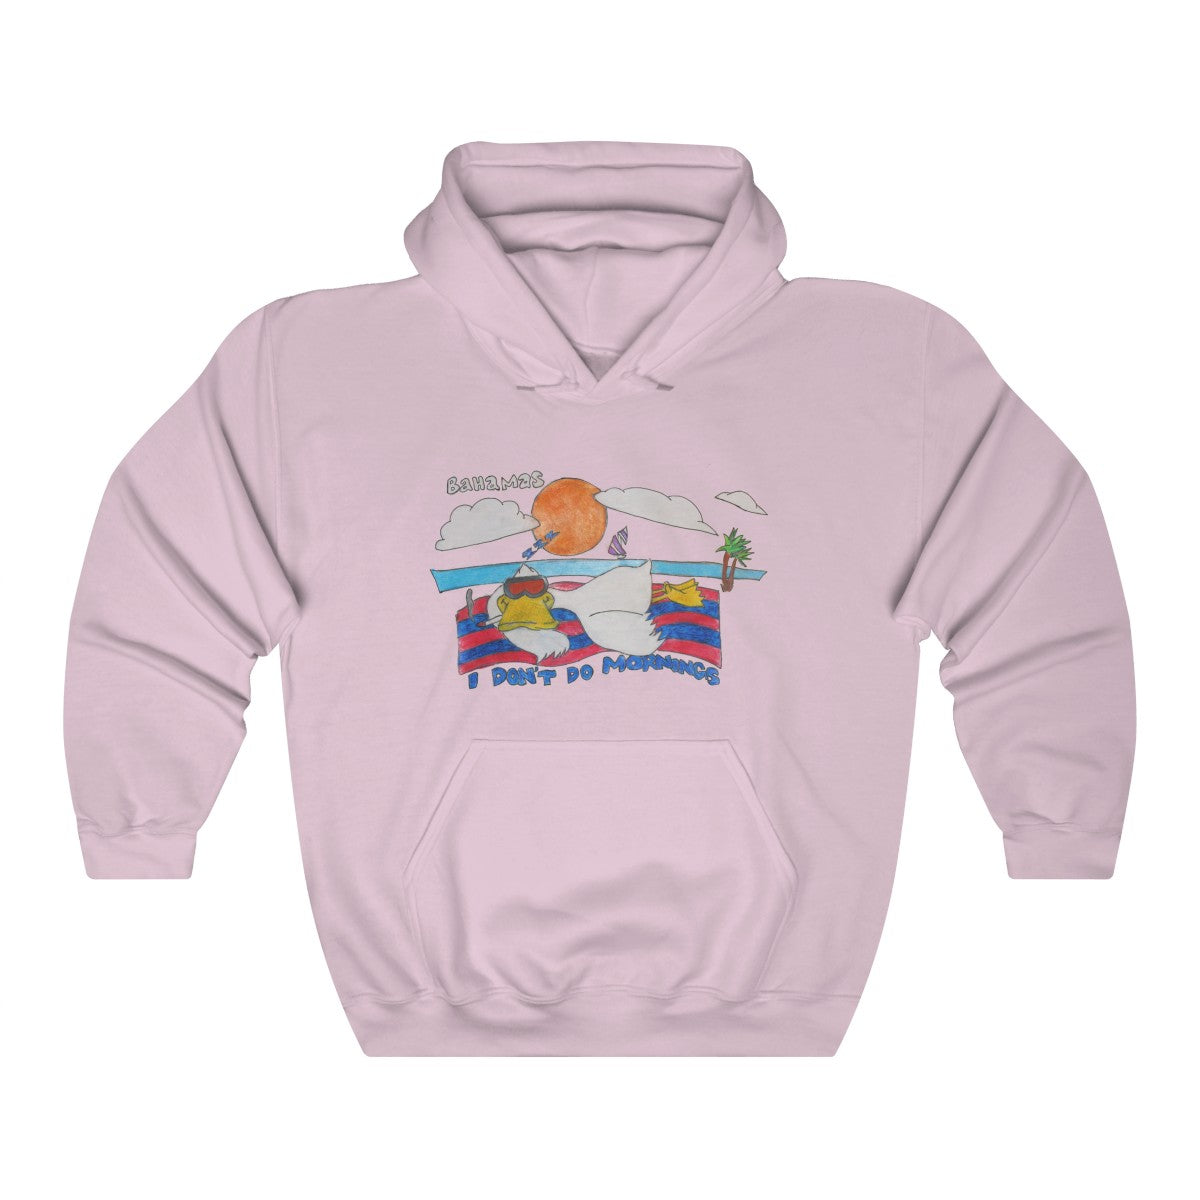 Vintage I Don't Do Mornings Bahamas Hoodie